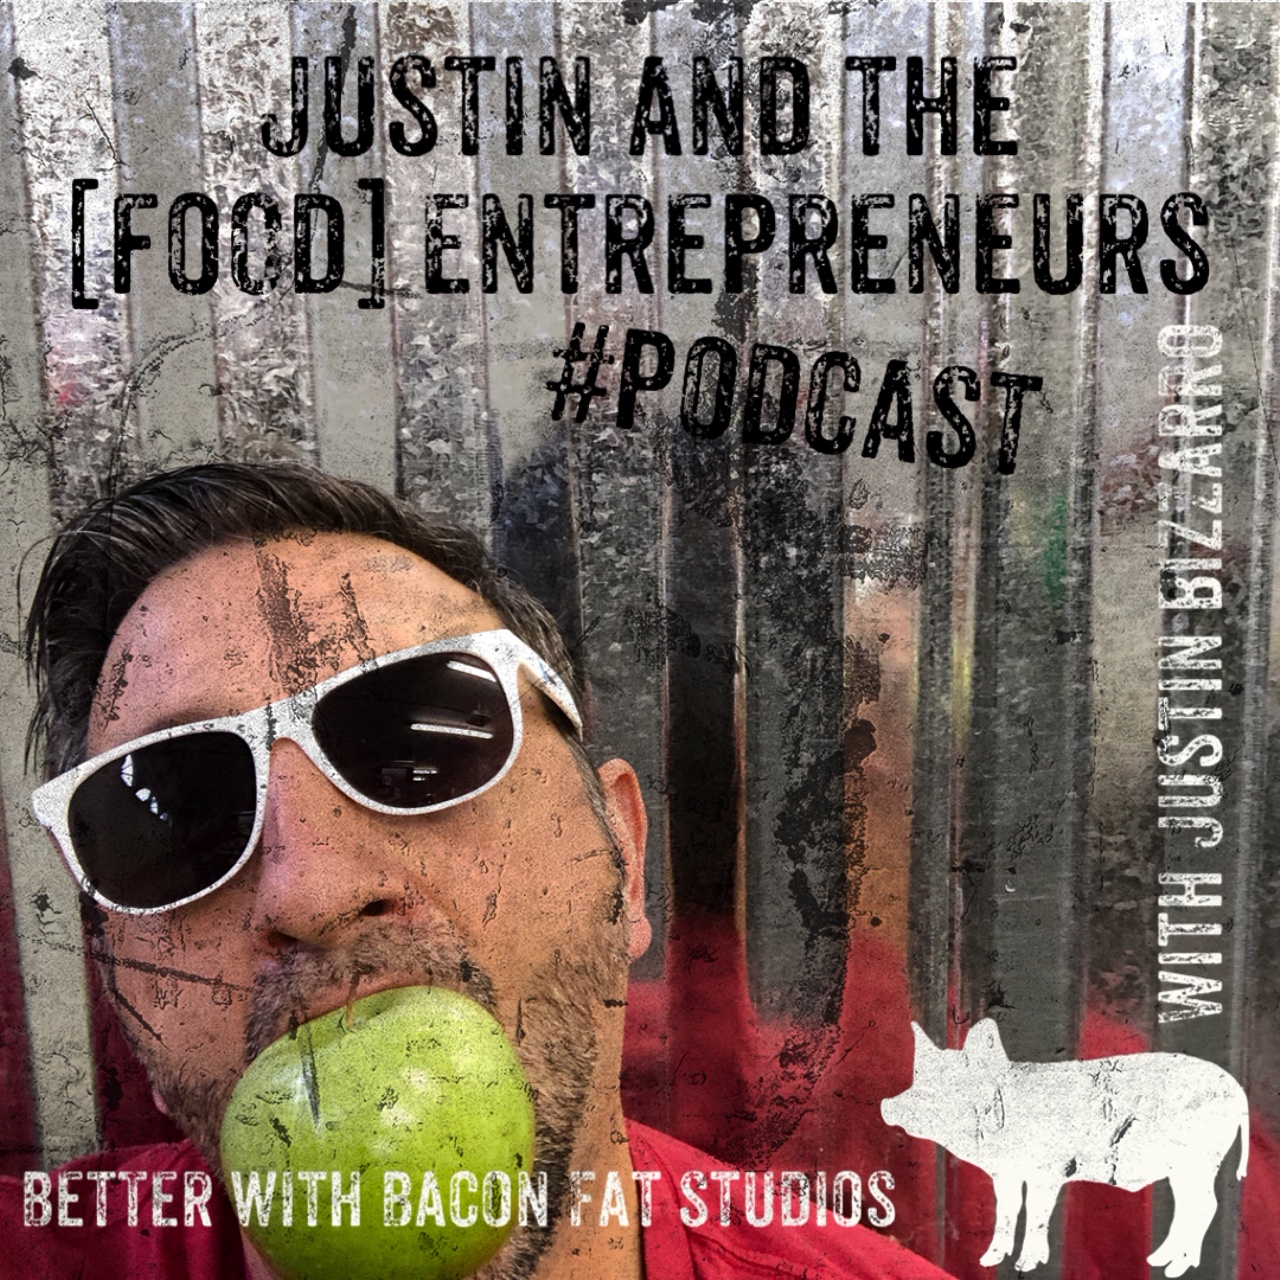 Episode 161: Spencer McDonald of Spencer's Jerkin' Jerky - Ashburn, VA (Part 3). No Sugar Added. Collaboration Mash Ups to Improve Sales. New World Better Sales. Can Flow for Growth (and Fun).